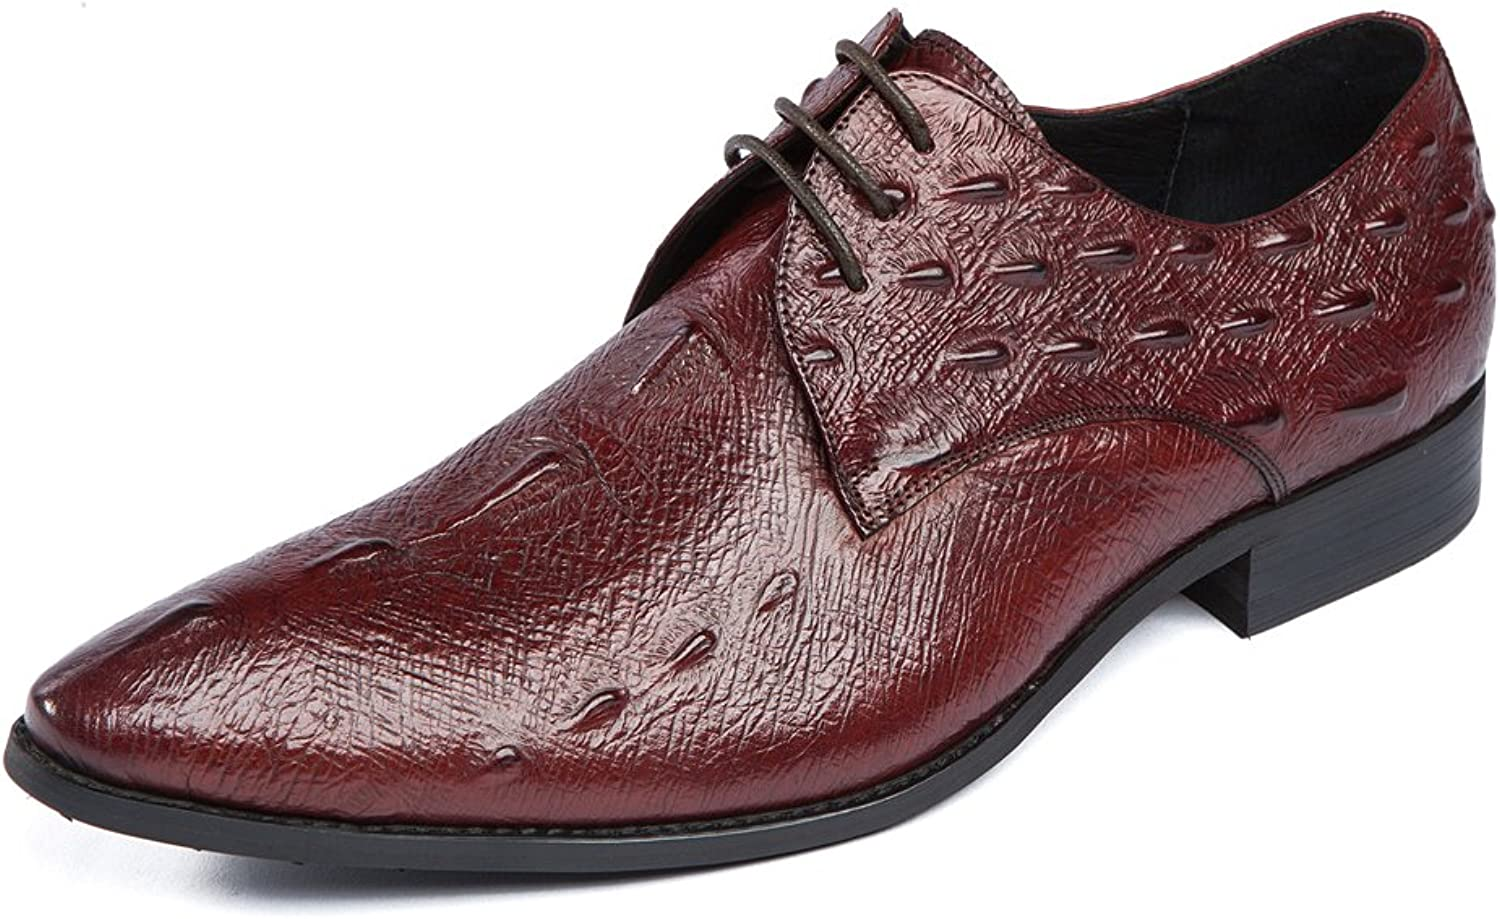 b26ffdb552e6 Dilize Dilize Dilize Men's Premium Embossed Leather Lace up Derby ...